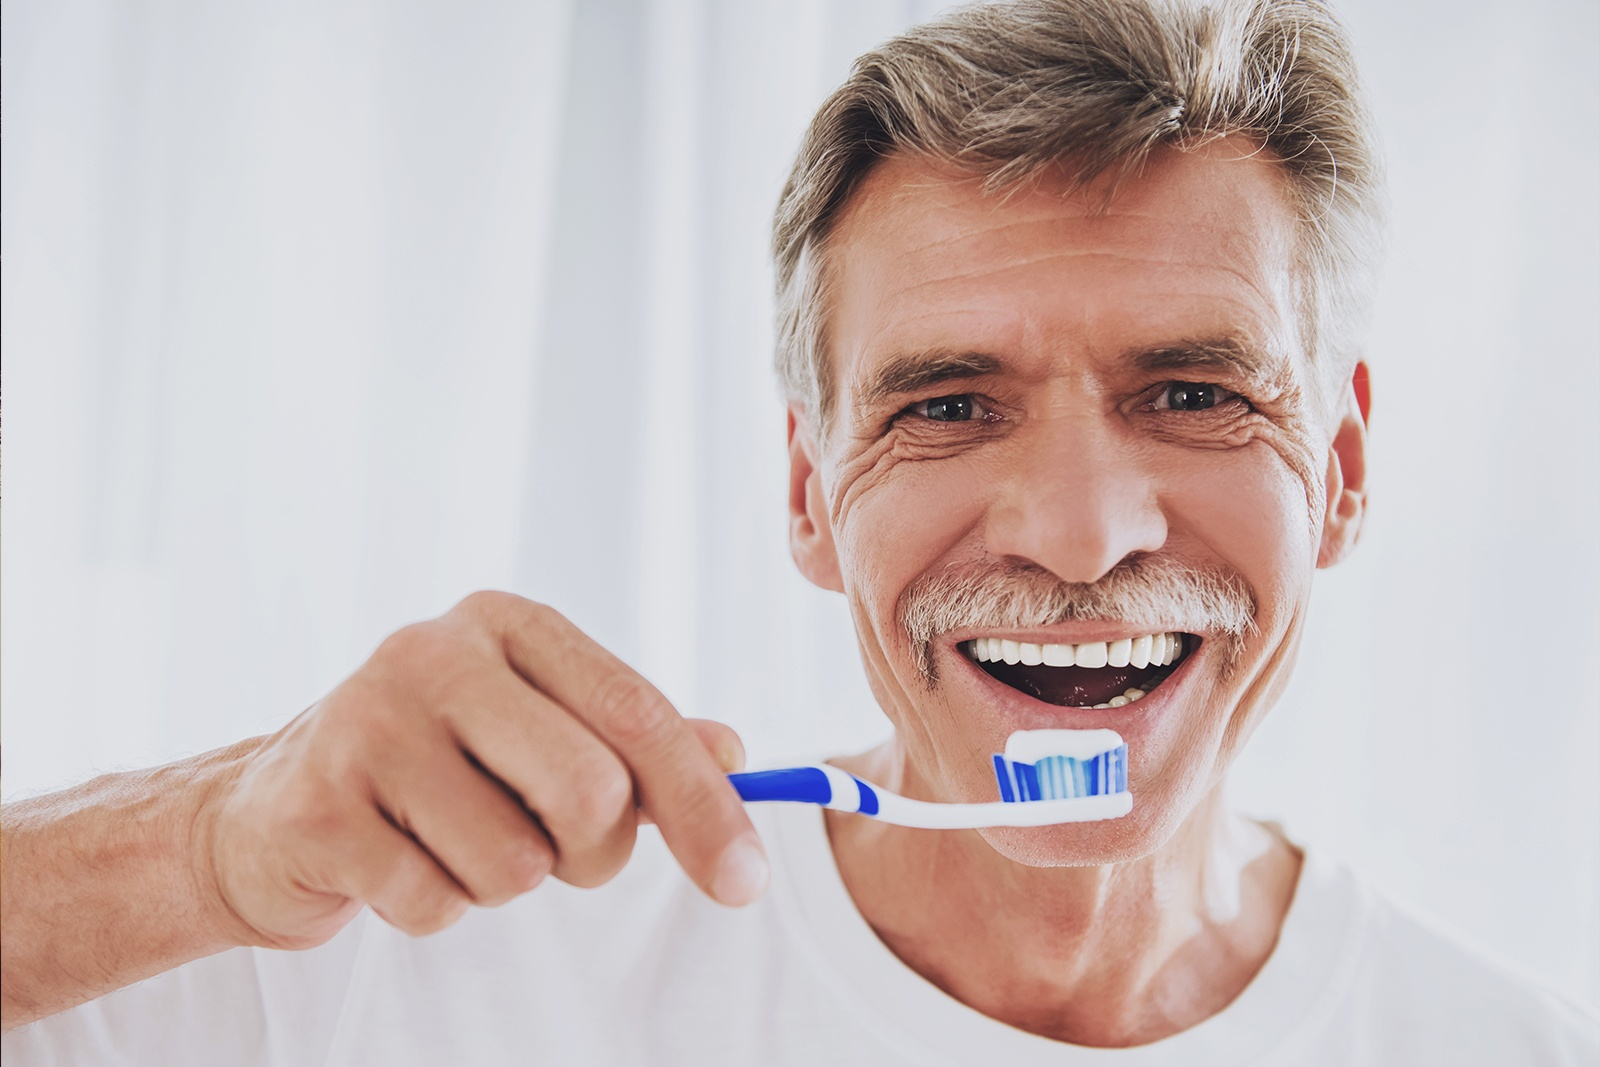 ROOT CANAL SPECIALISTS TORONTO, TORONTO ENDODONTISTS